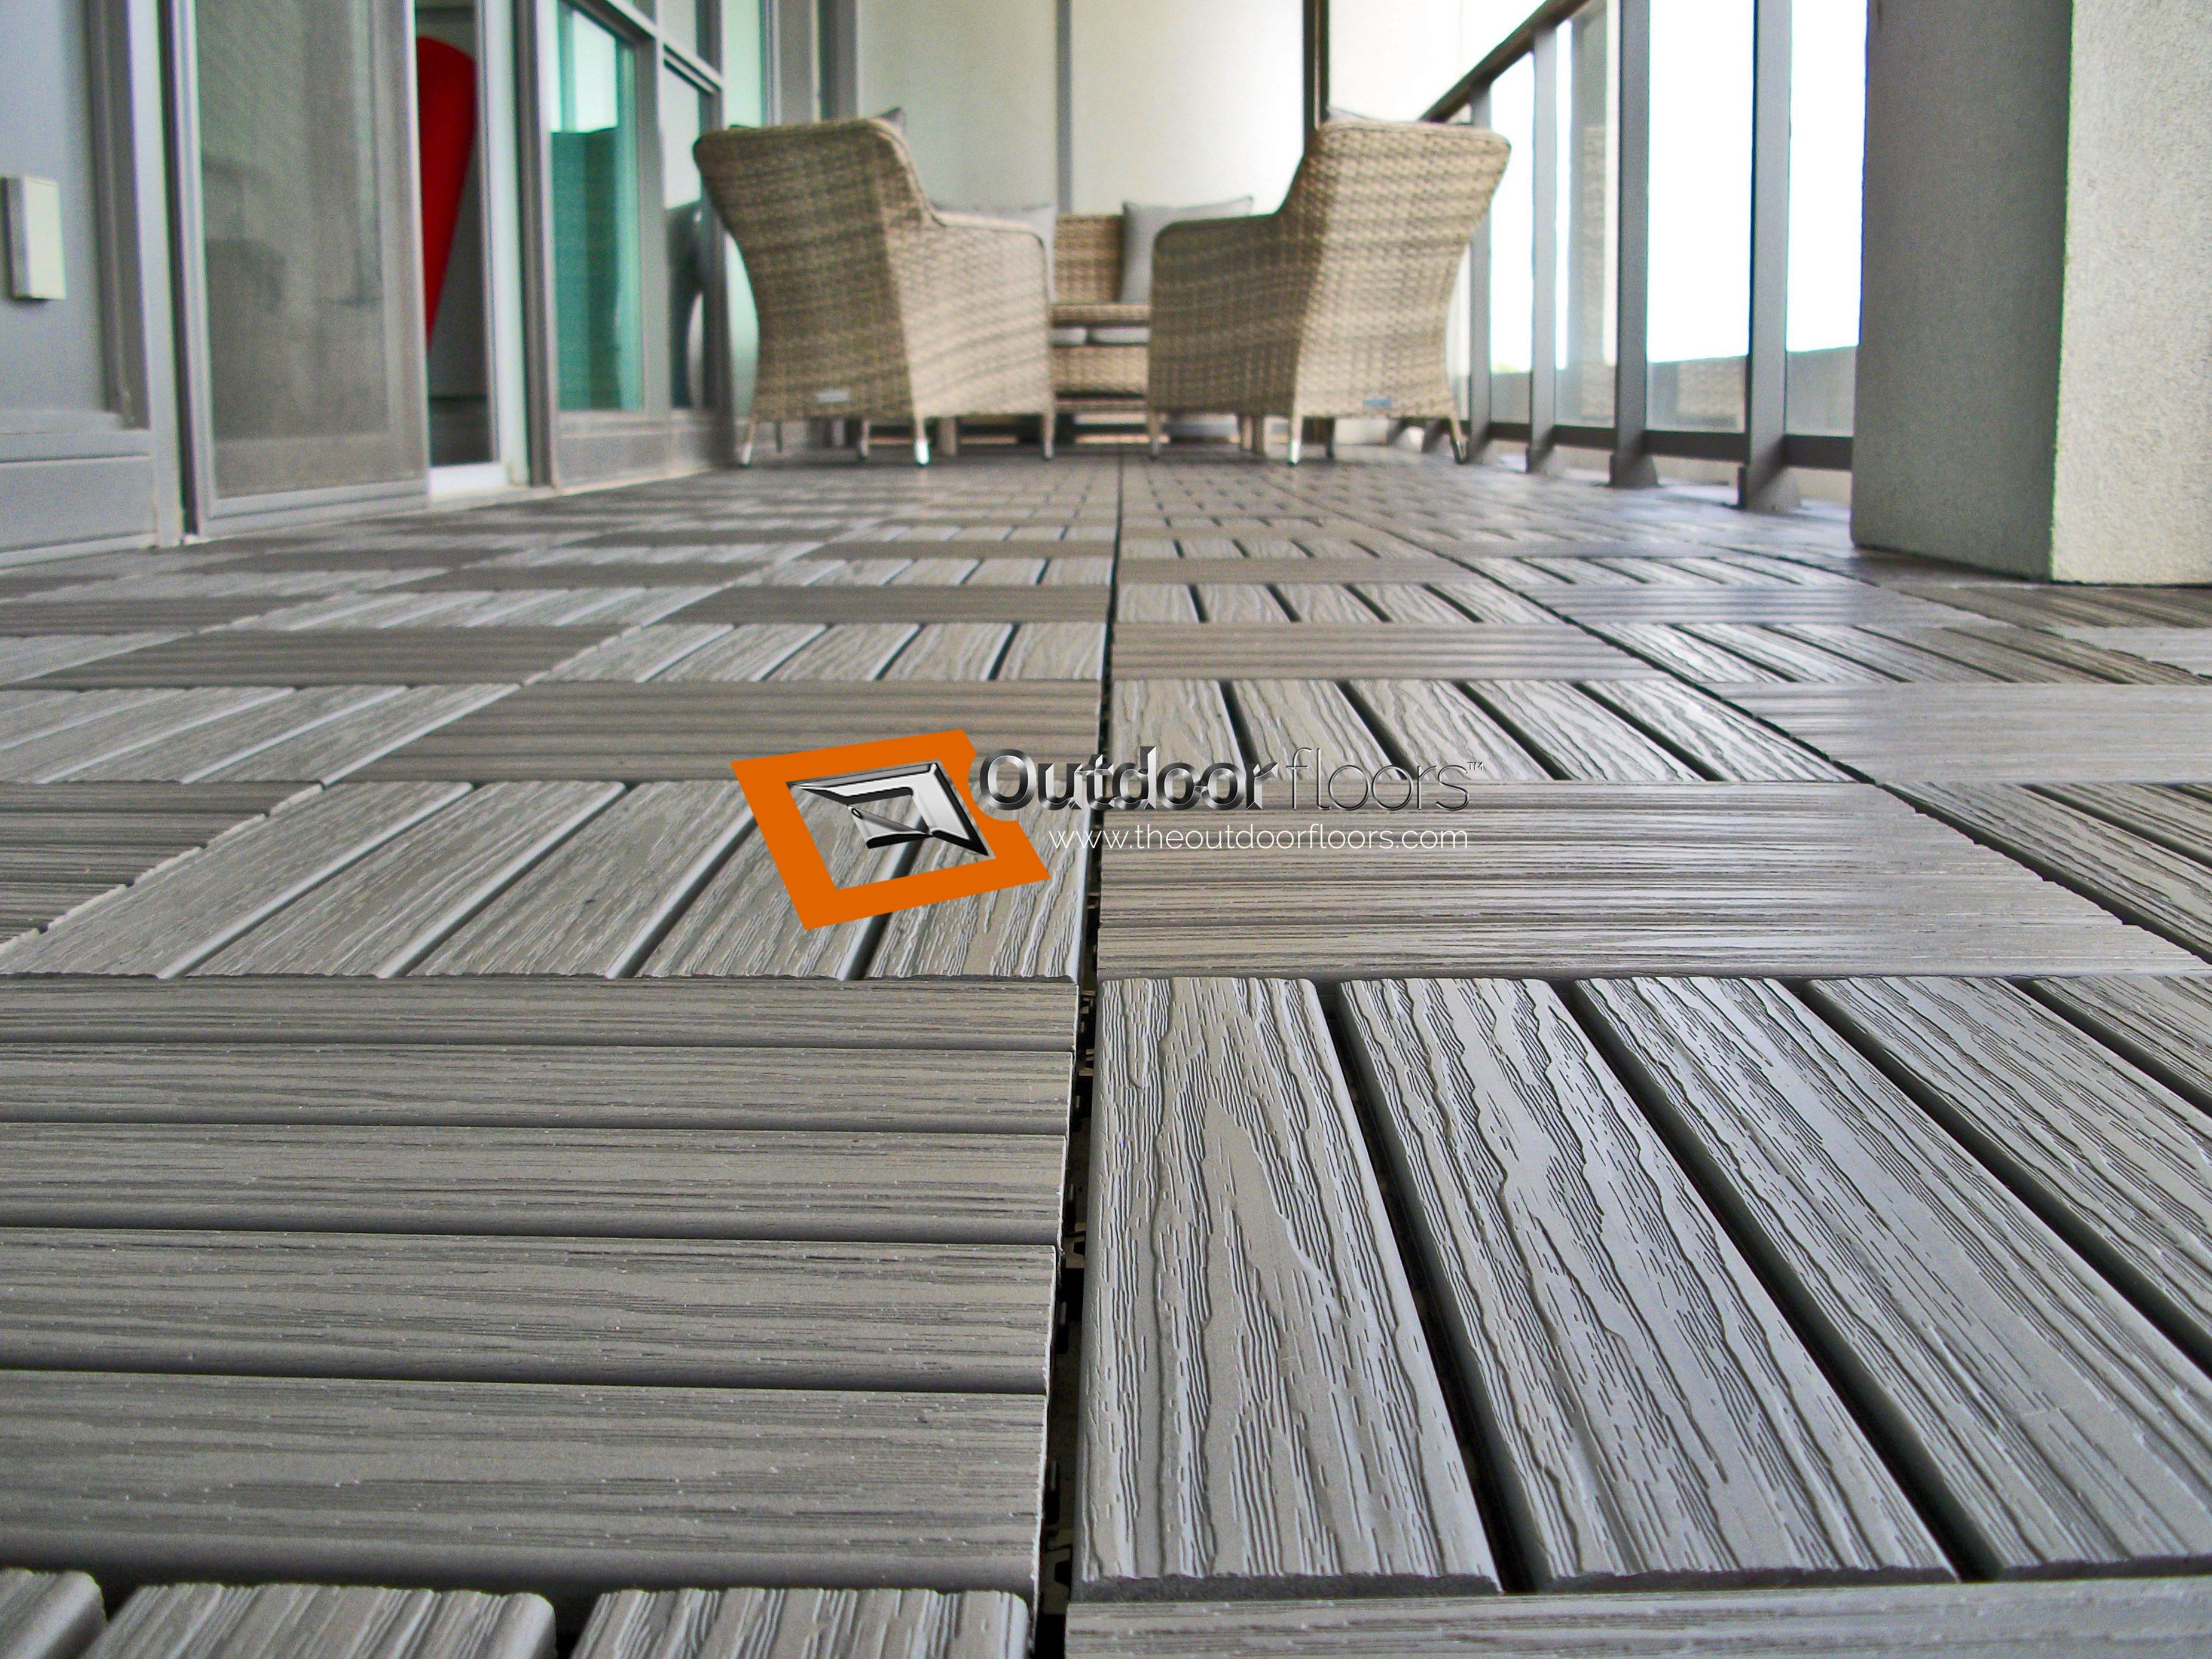 Balcony Flooring Ideas In Oakville With High Quality Plastic Resin Outdoor Interlocking Tiles Floors 2016 Toronto